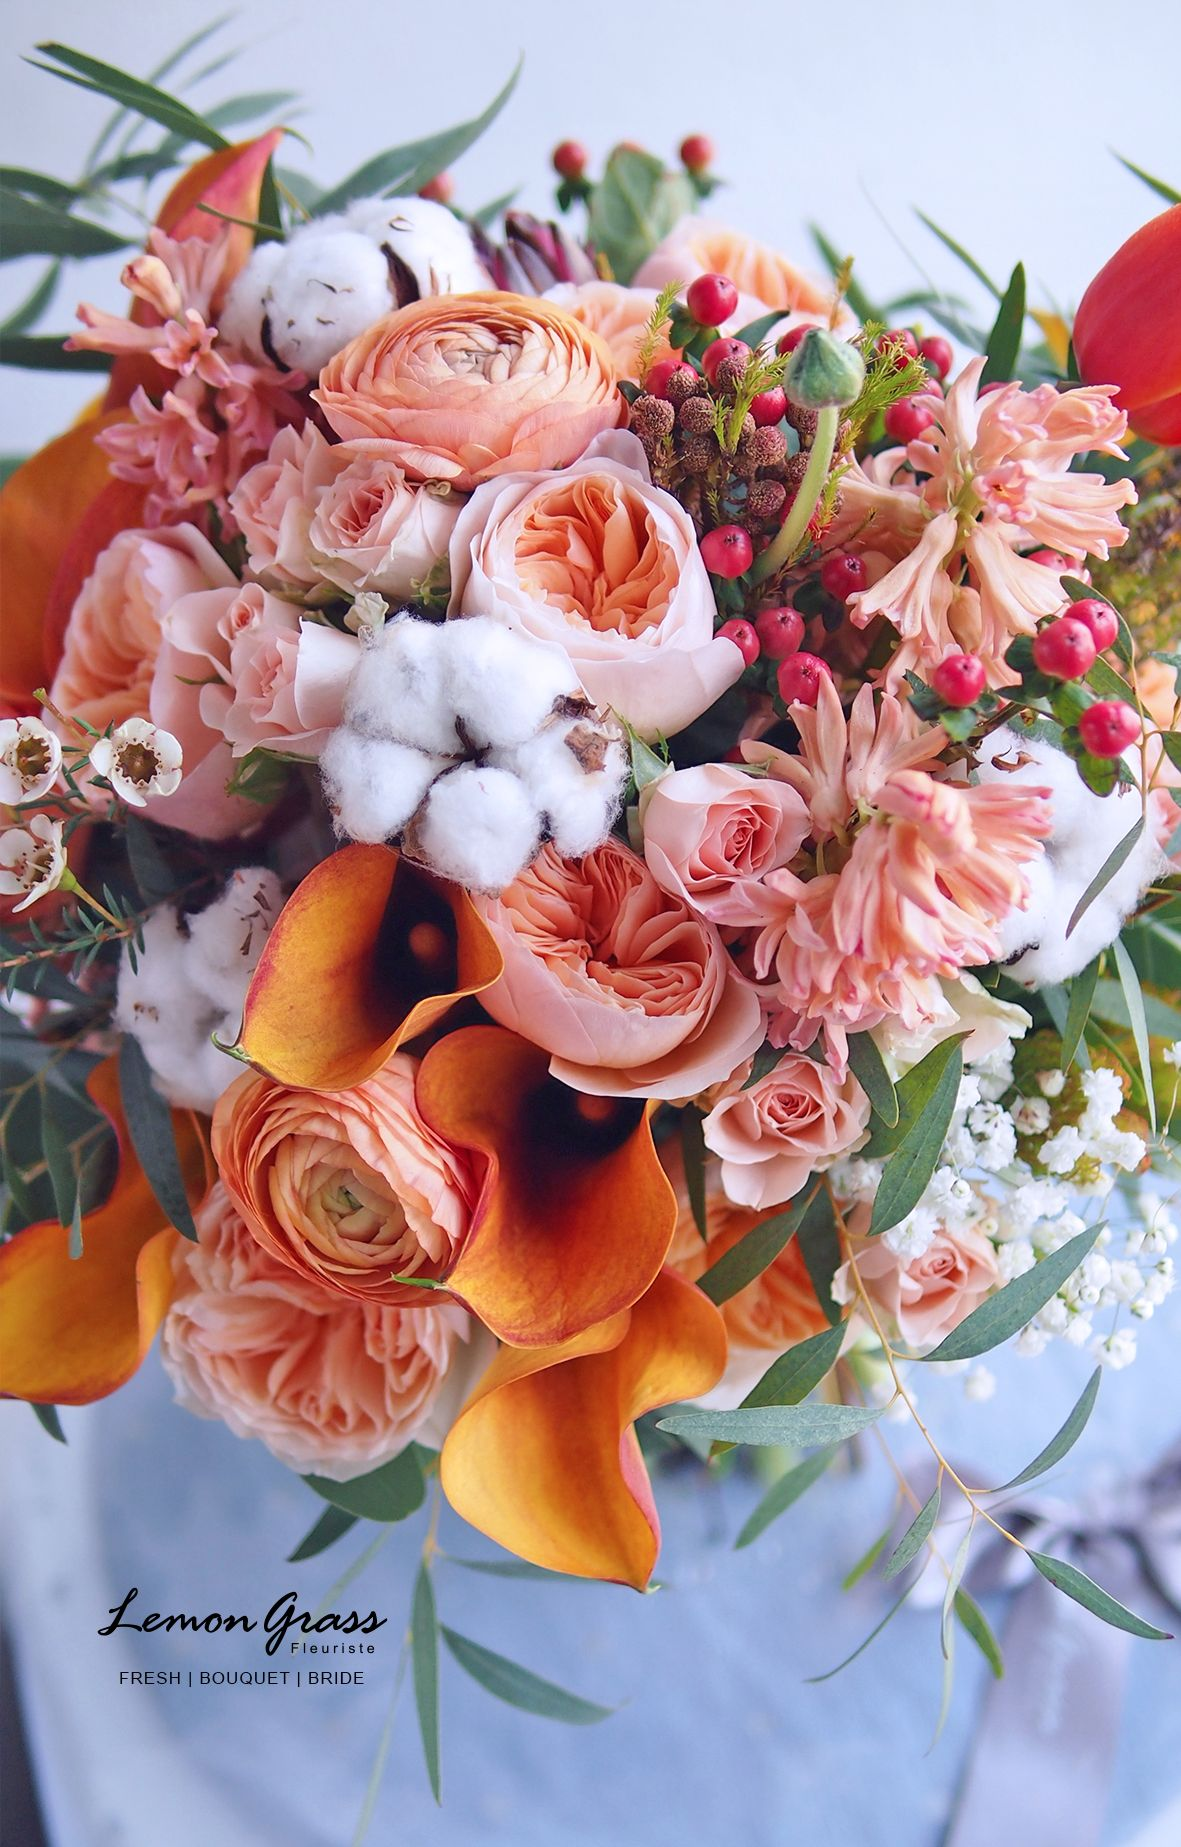 Pin by ro art patch on flores maravilhosas pinterest flowers bunch of flowers fresh flowers flower bouquets floral bouquets izmirmasajfo